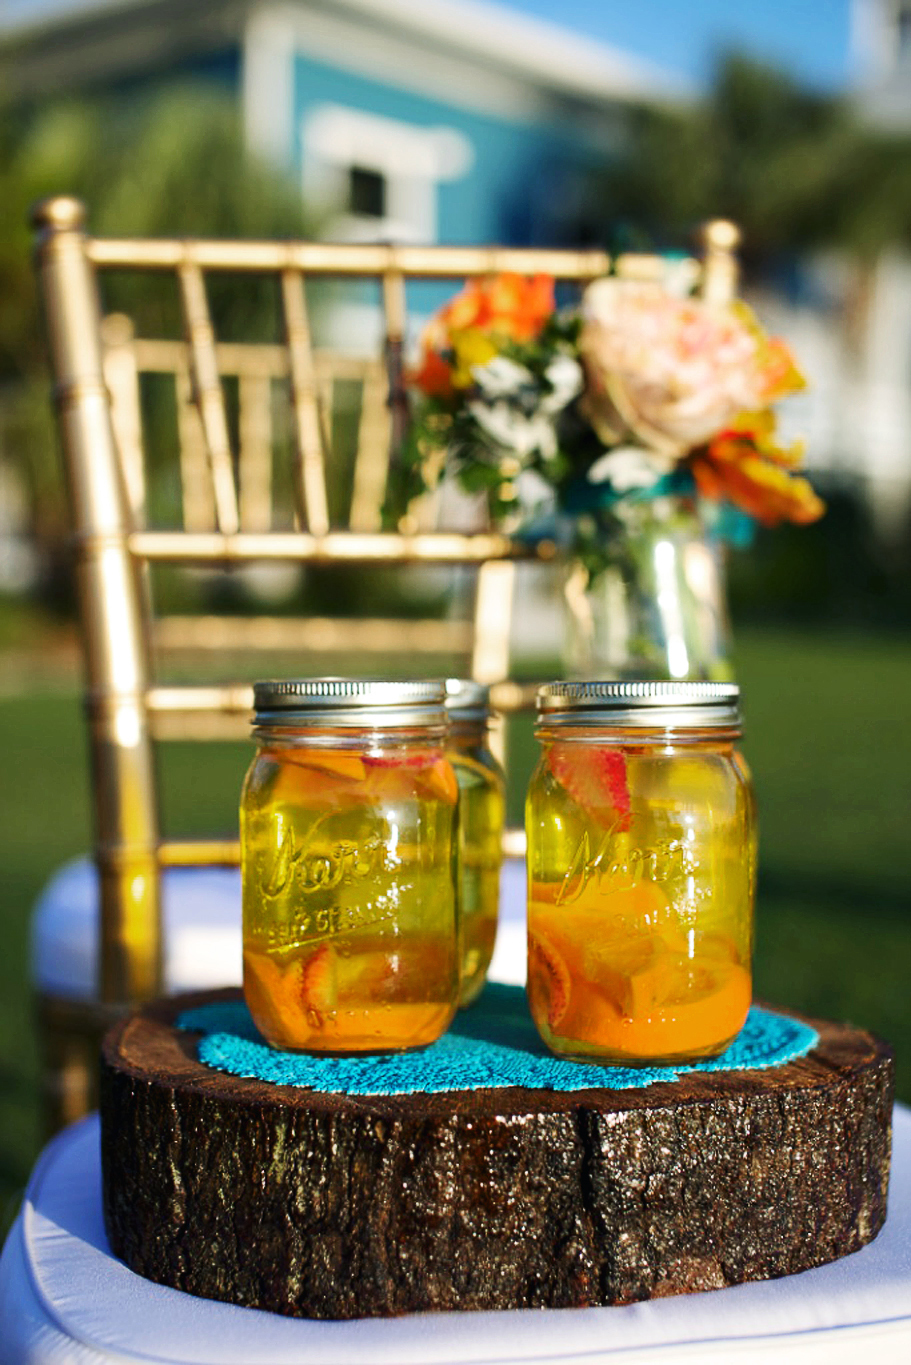 Rustic-citrus-wedding-inspiration-outdoor-spring-wedding-ideas-signature-drinks-in-mason-jars.full